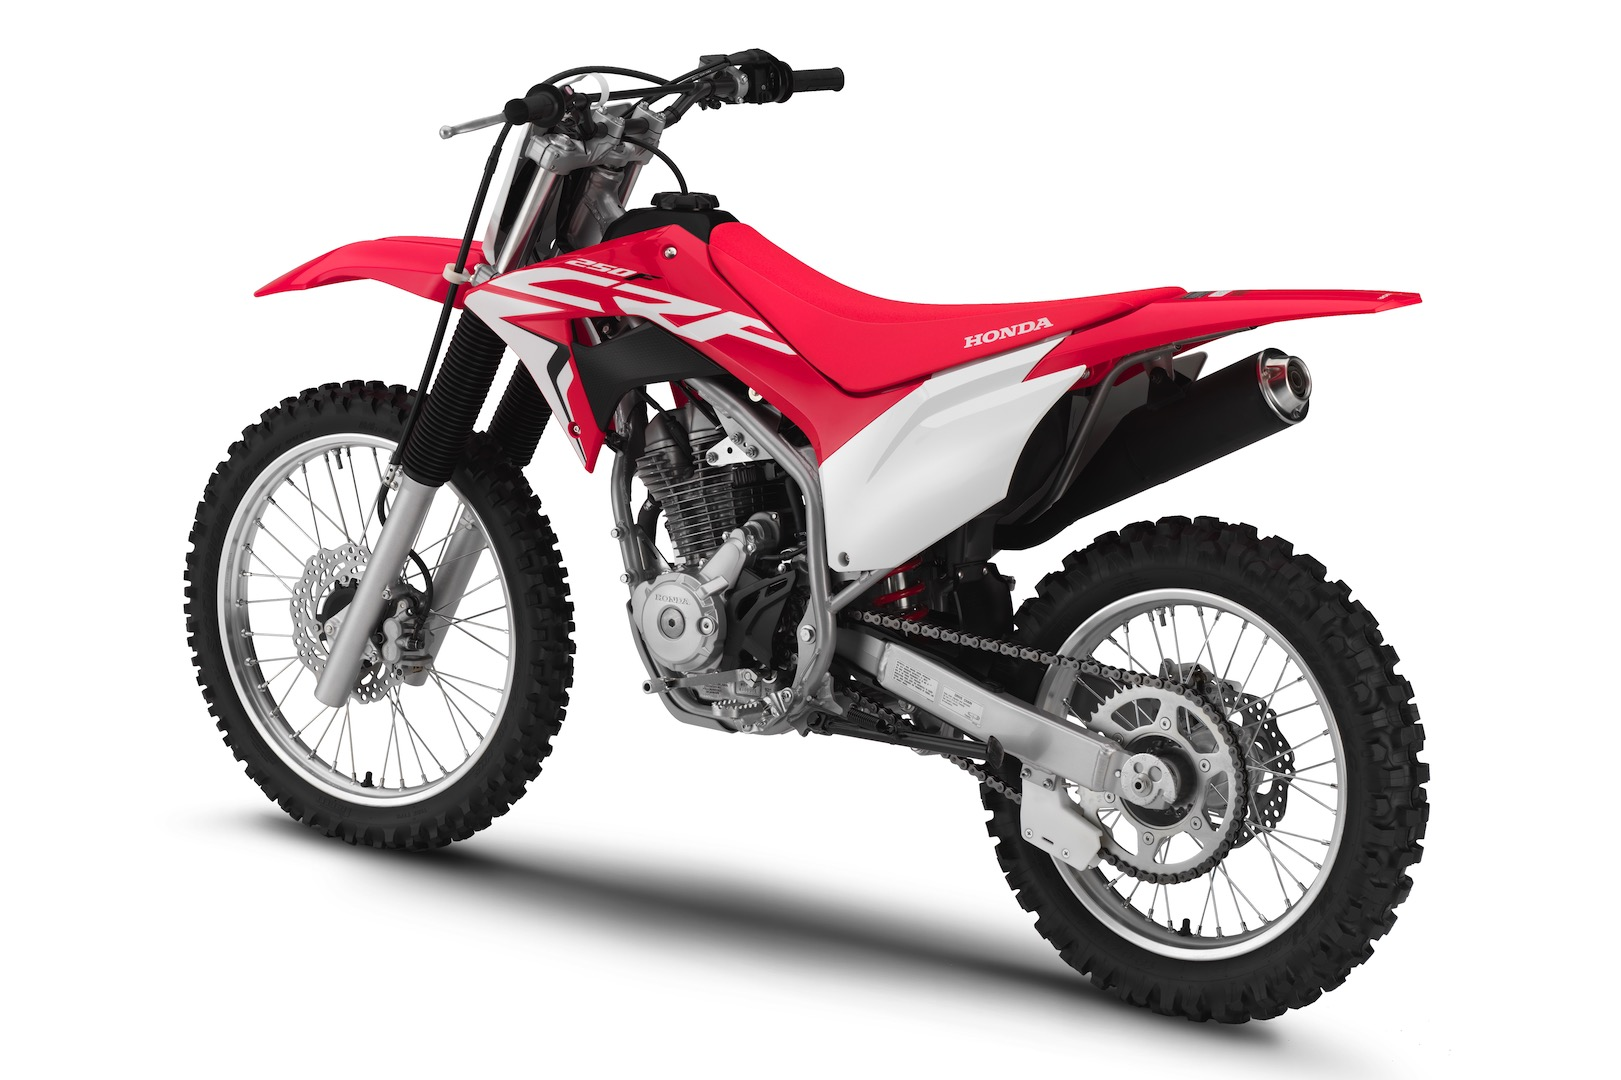 2019 Honda Crf250f First Look 11 Fast Facts